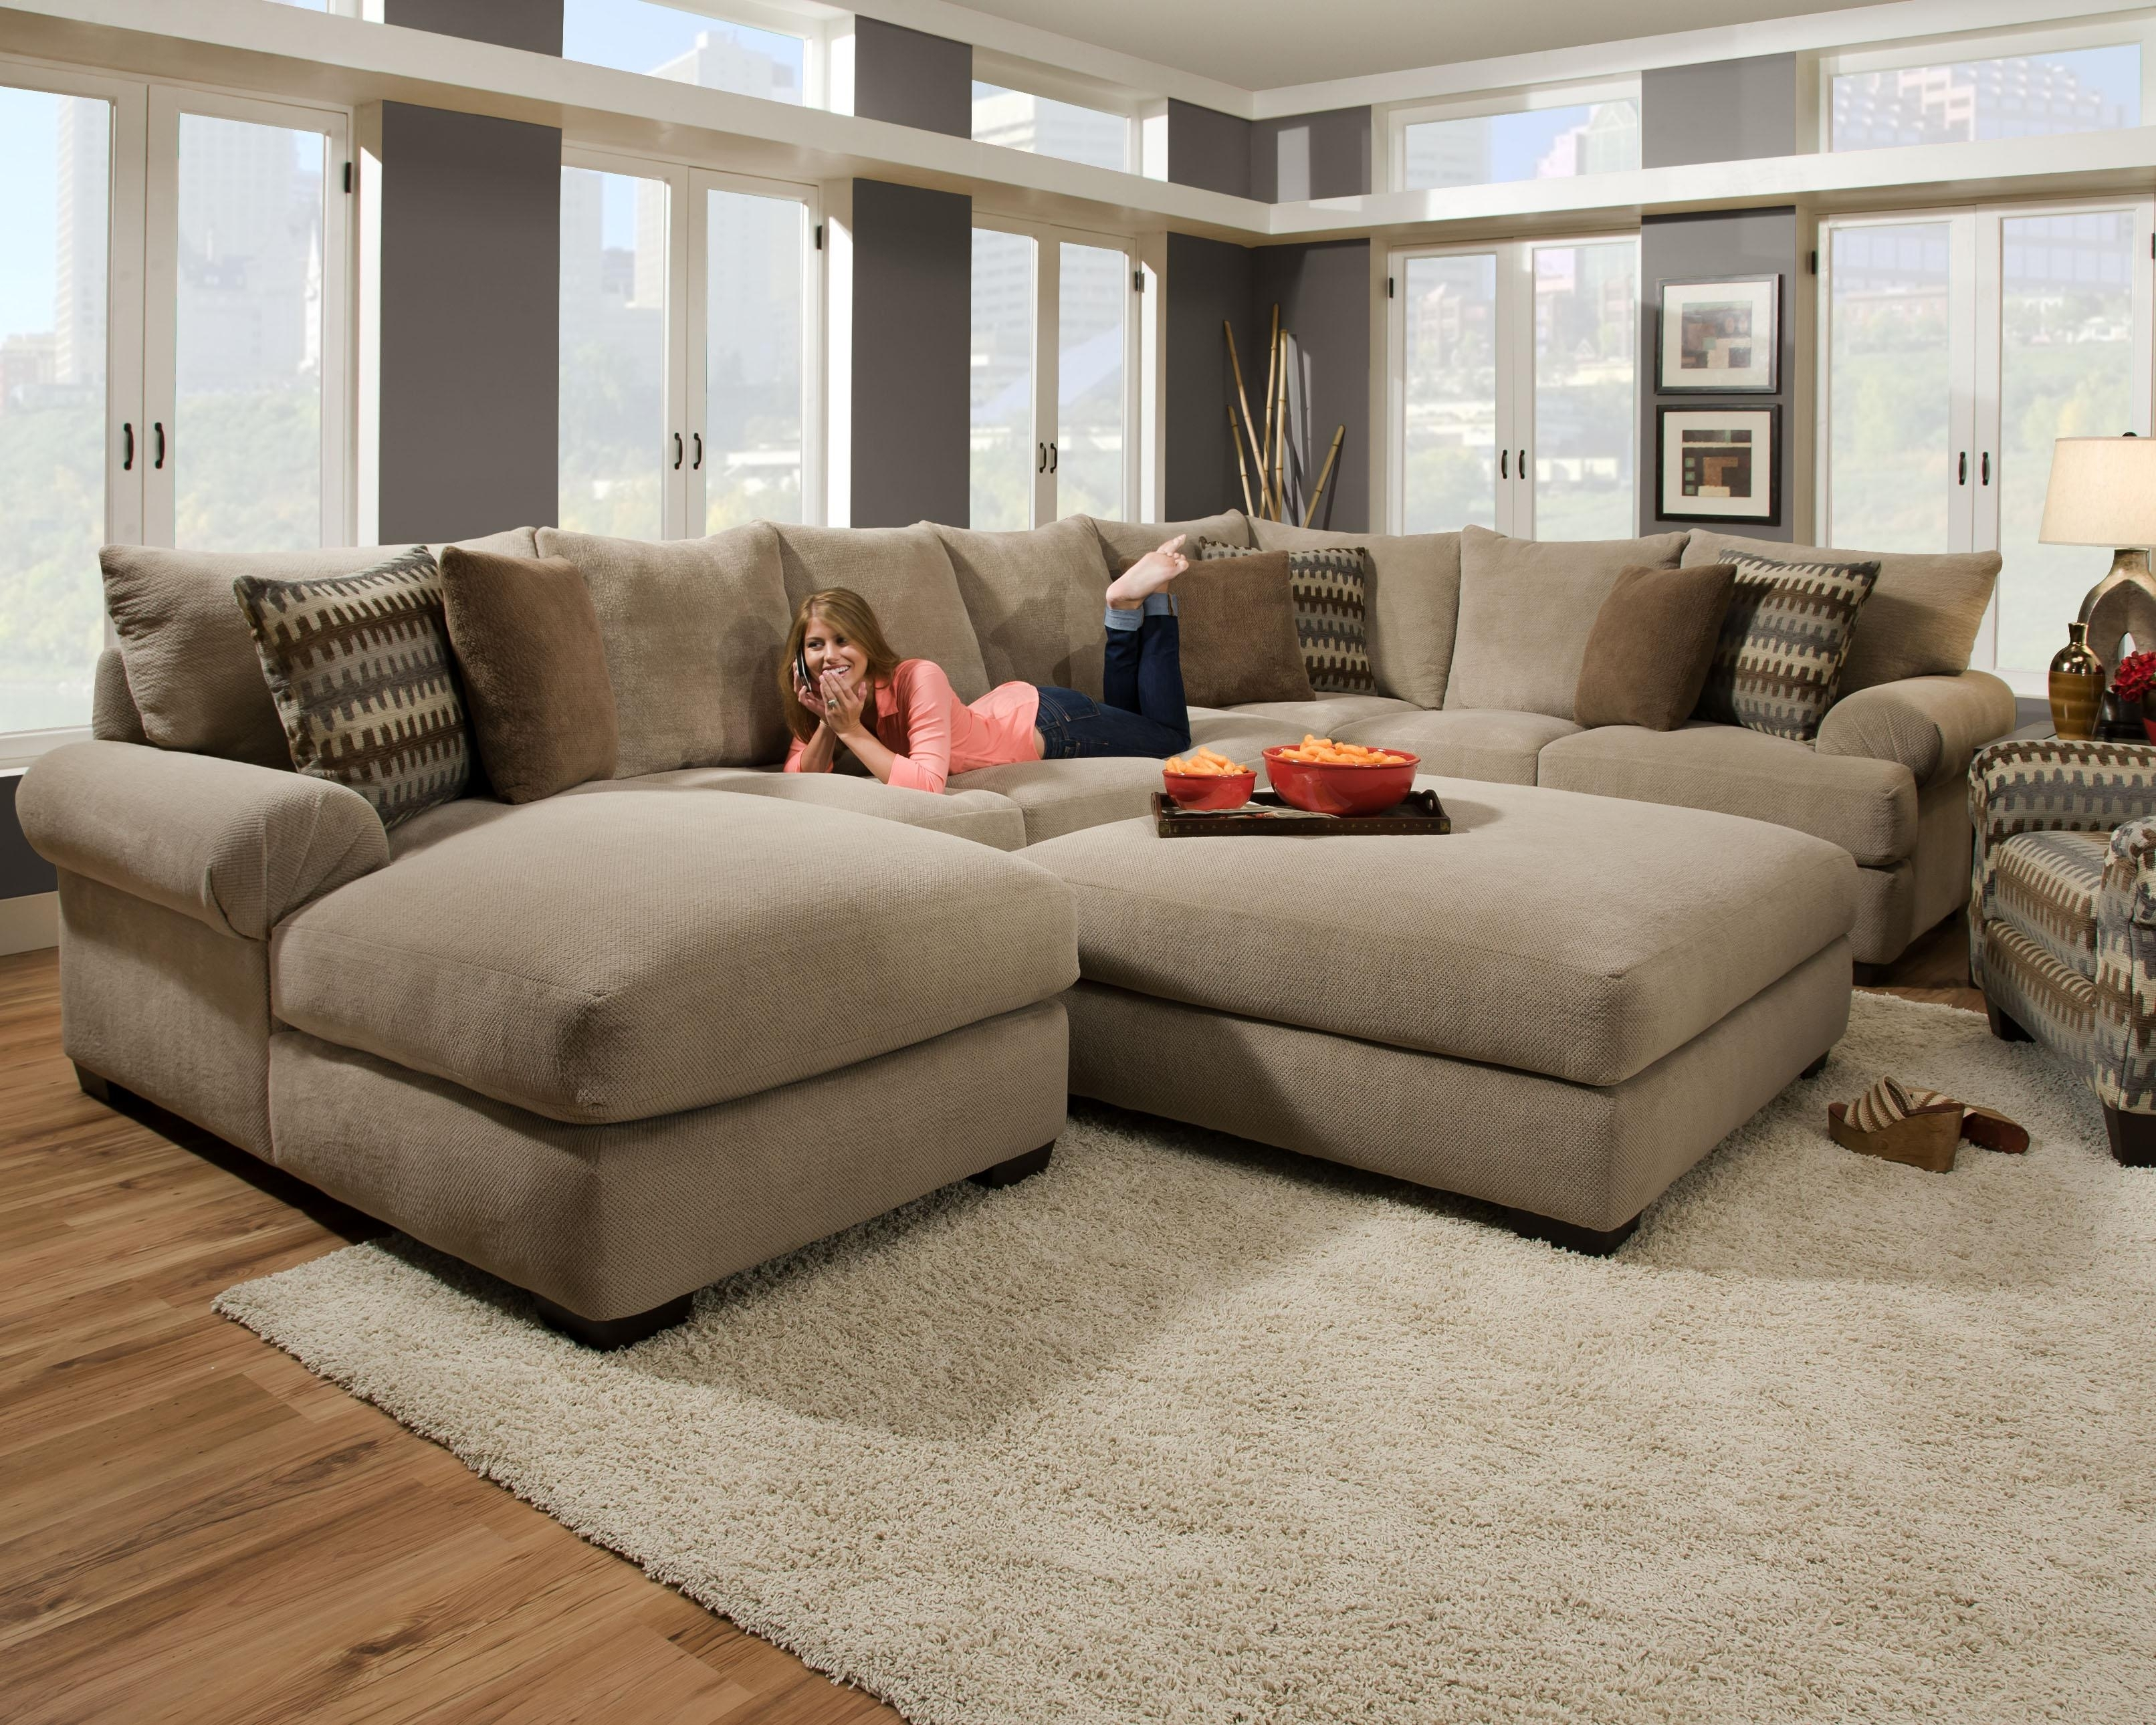 Epic Comfy Sectional Sofas 44 With Additional Best Sleeper Sofa Within Sectional Sofas Under (View 8 of 15)